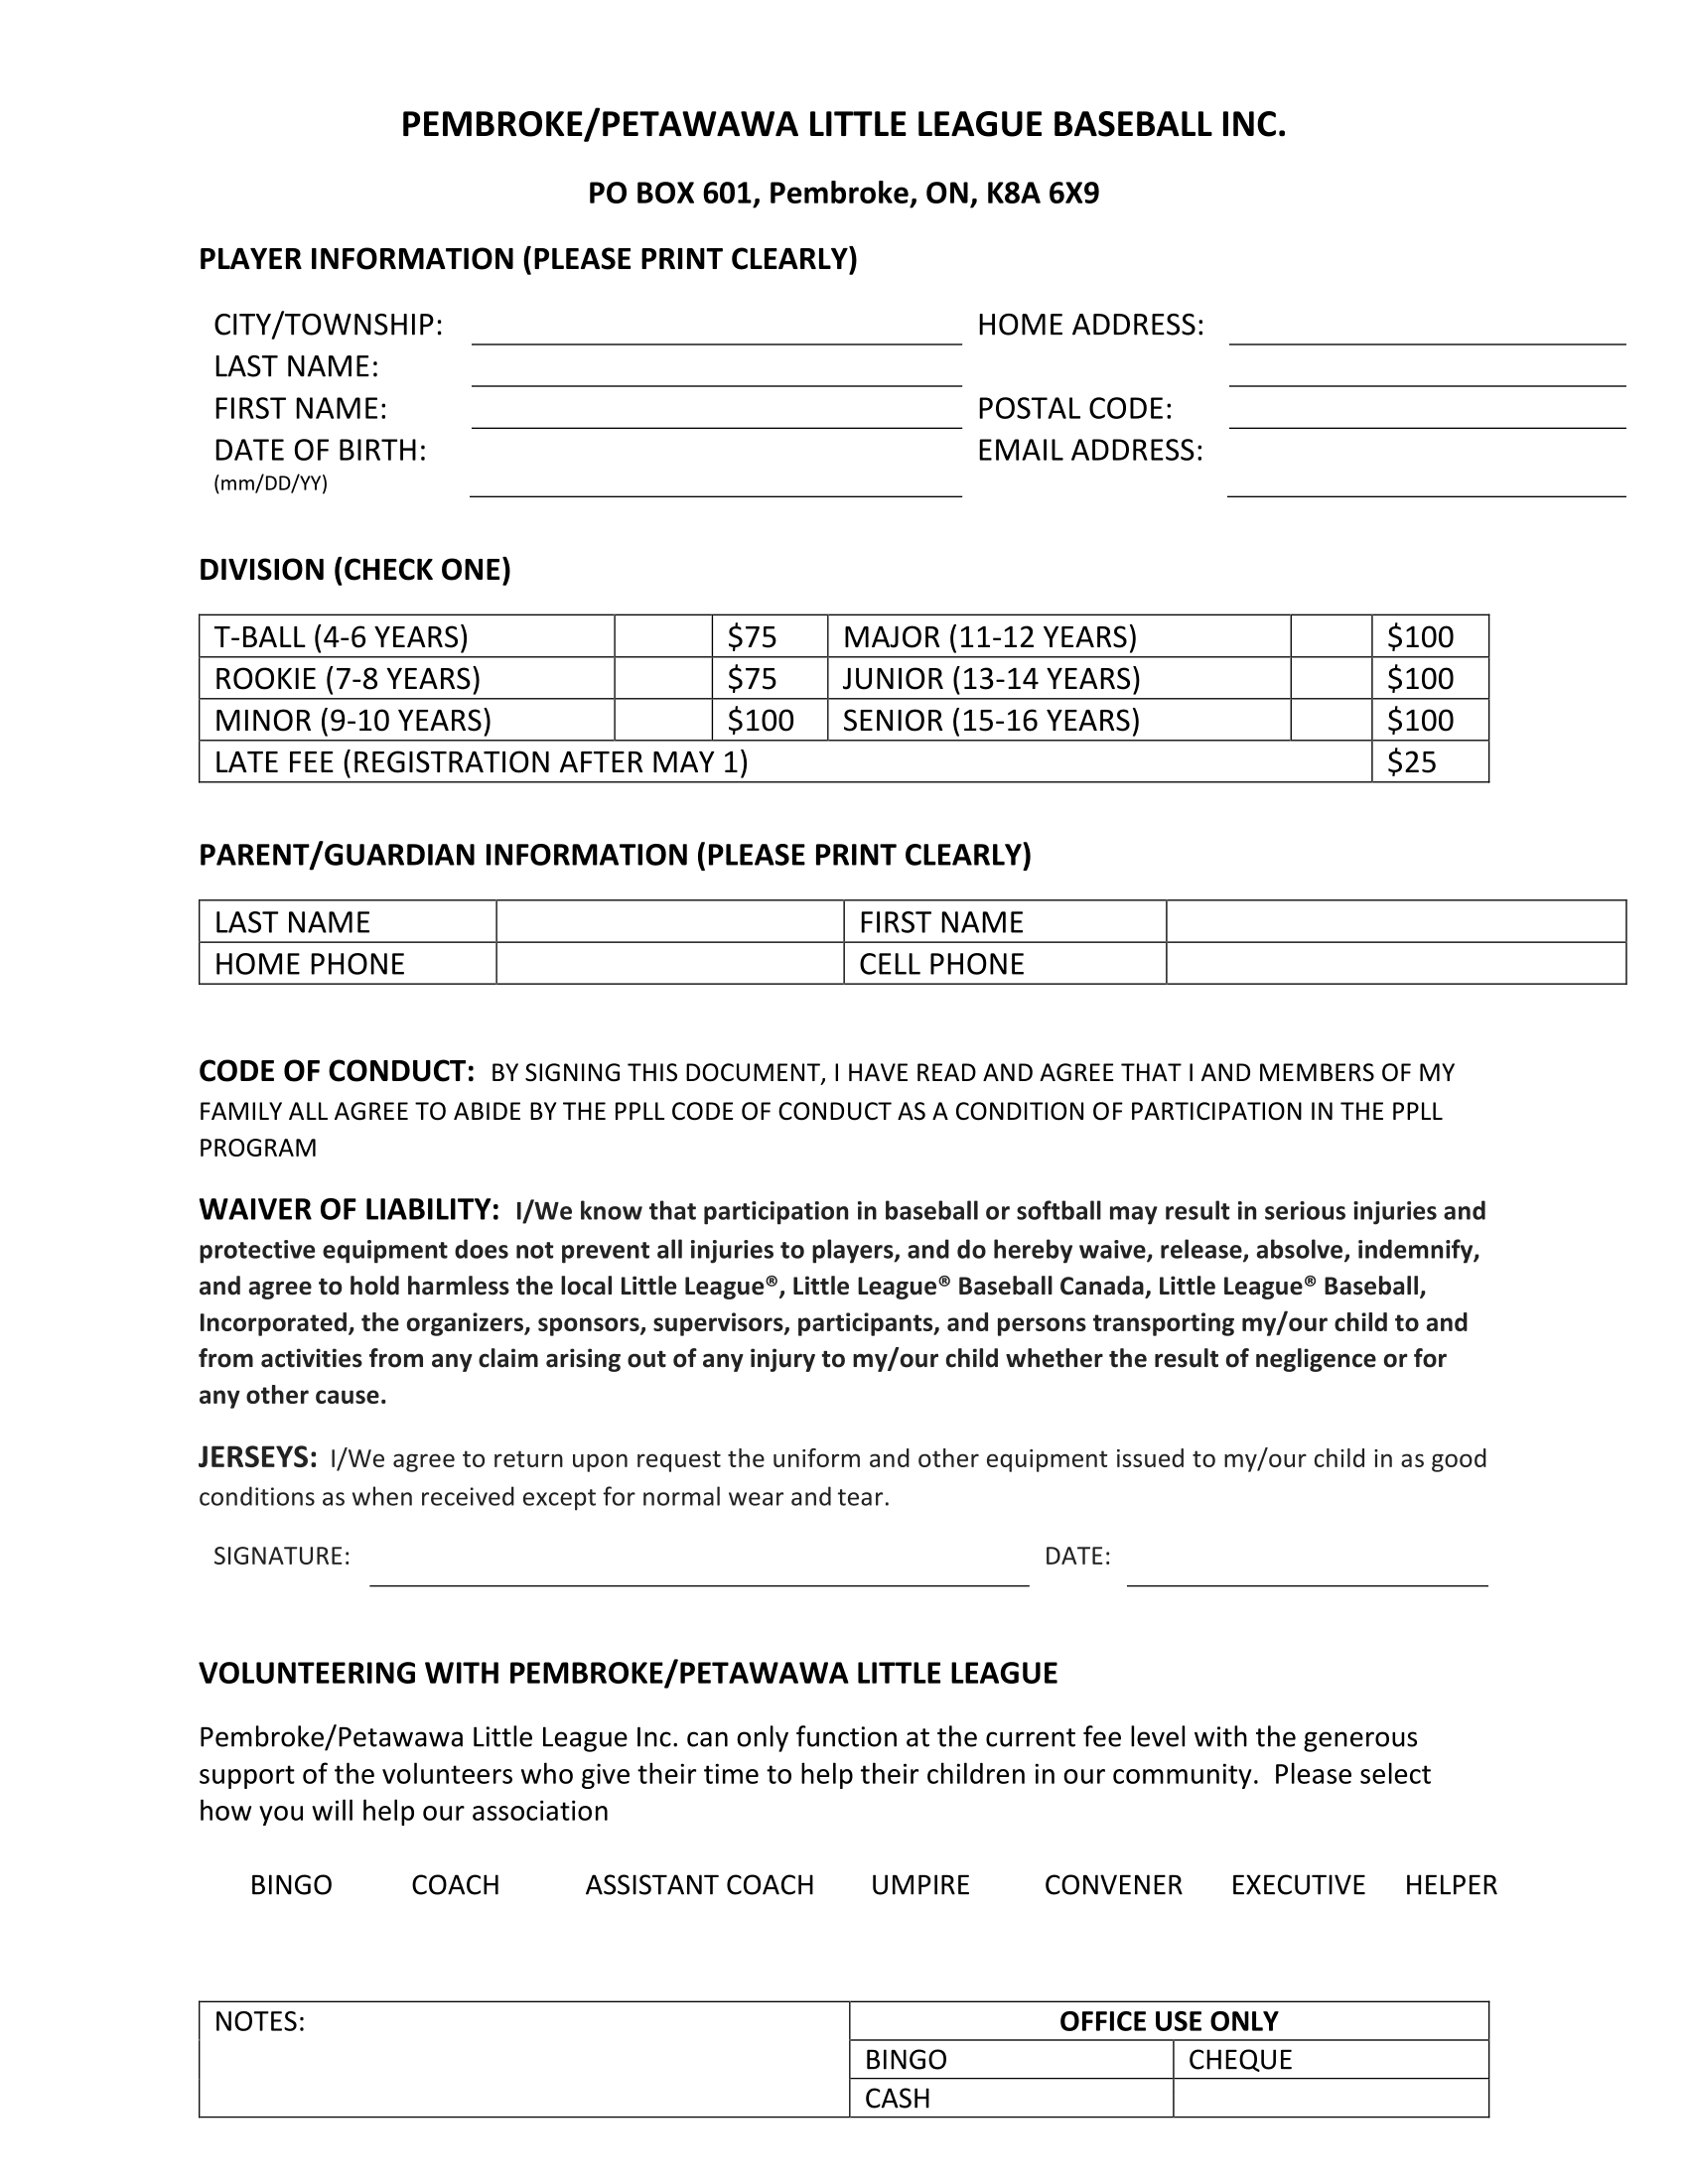 PPLL 2017 Registration Form